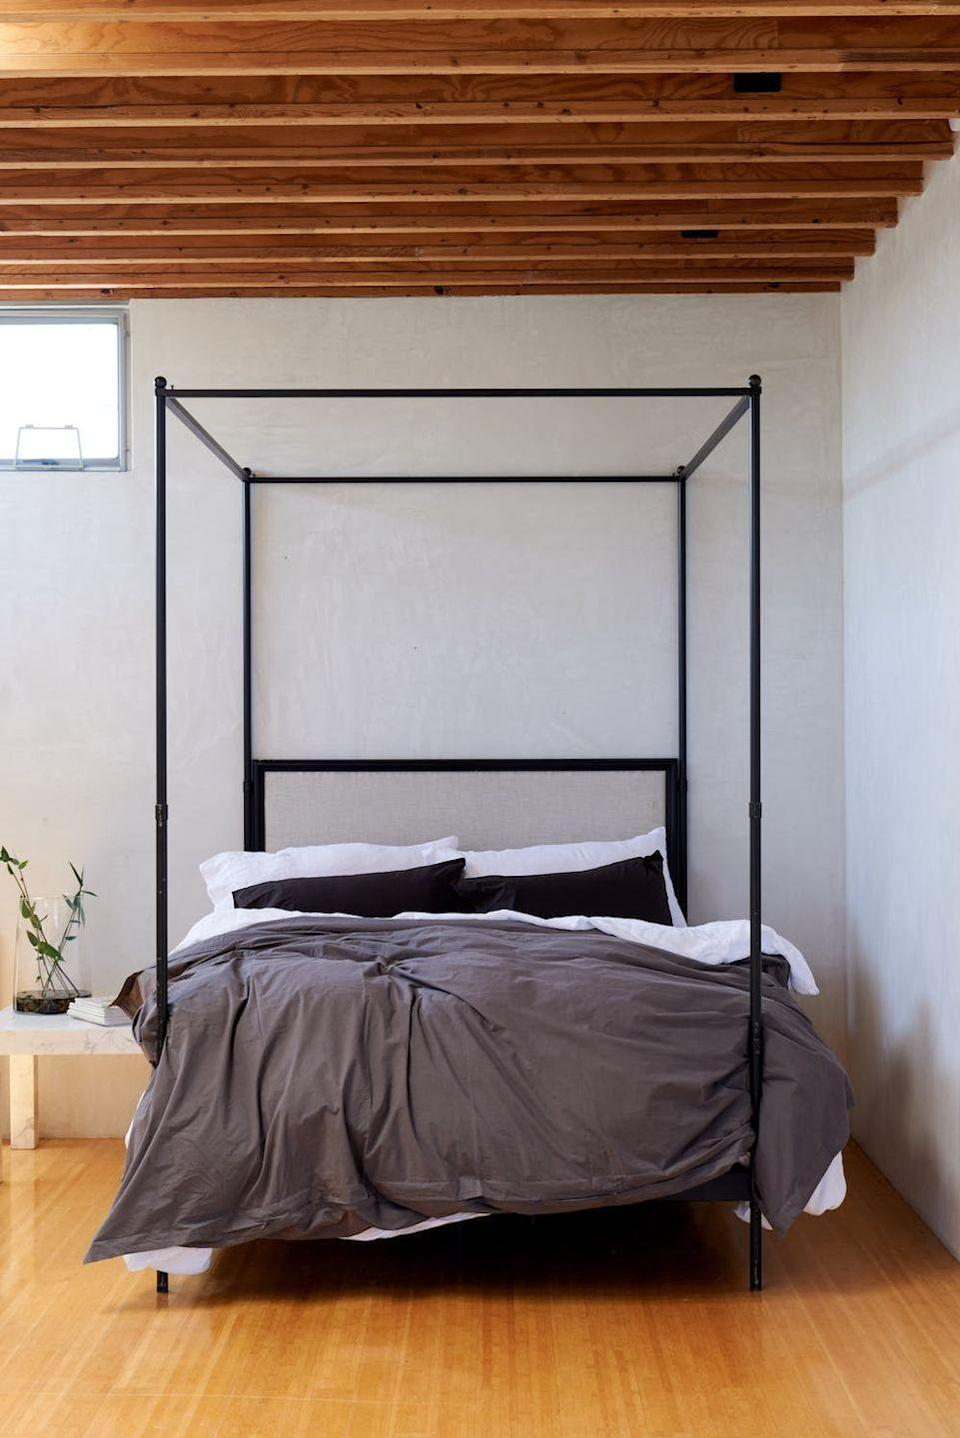 "<p>Sweet dreams are made of these exposed beams in a bedroom by <a href=""https://leanneford.com/"" rel=""nofollow noopener"" target=""_blank"" data-ylk=""slk:Leanne Ford Interiors"" class=""link rapid-noclick-resp"">Leanne Ford Interiors</a>. Less is more in this effortlessly sophisticated main bedroom. The tall four post bed stretches up the ceiling, making the room feel even bigger than it is. The darker linens contribute to the easy elegance of the space while keeping things earthy and grounded. </p>"